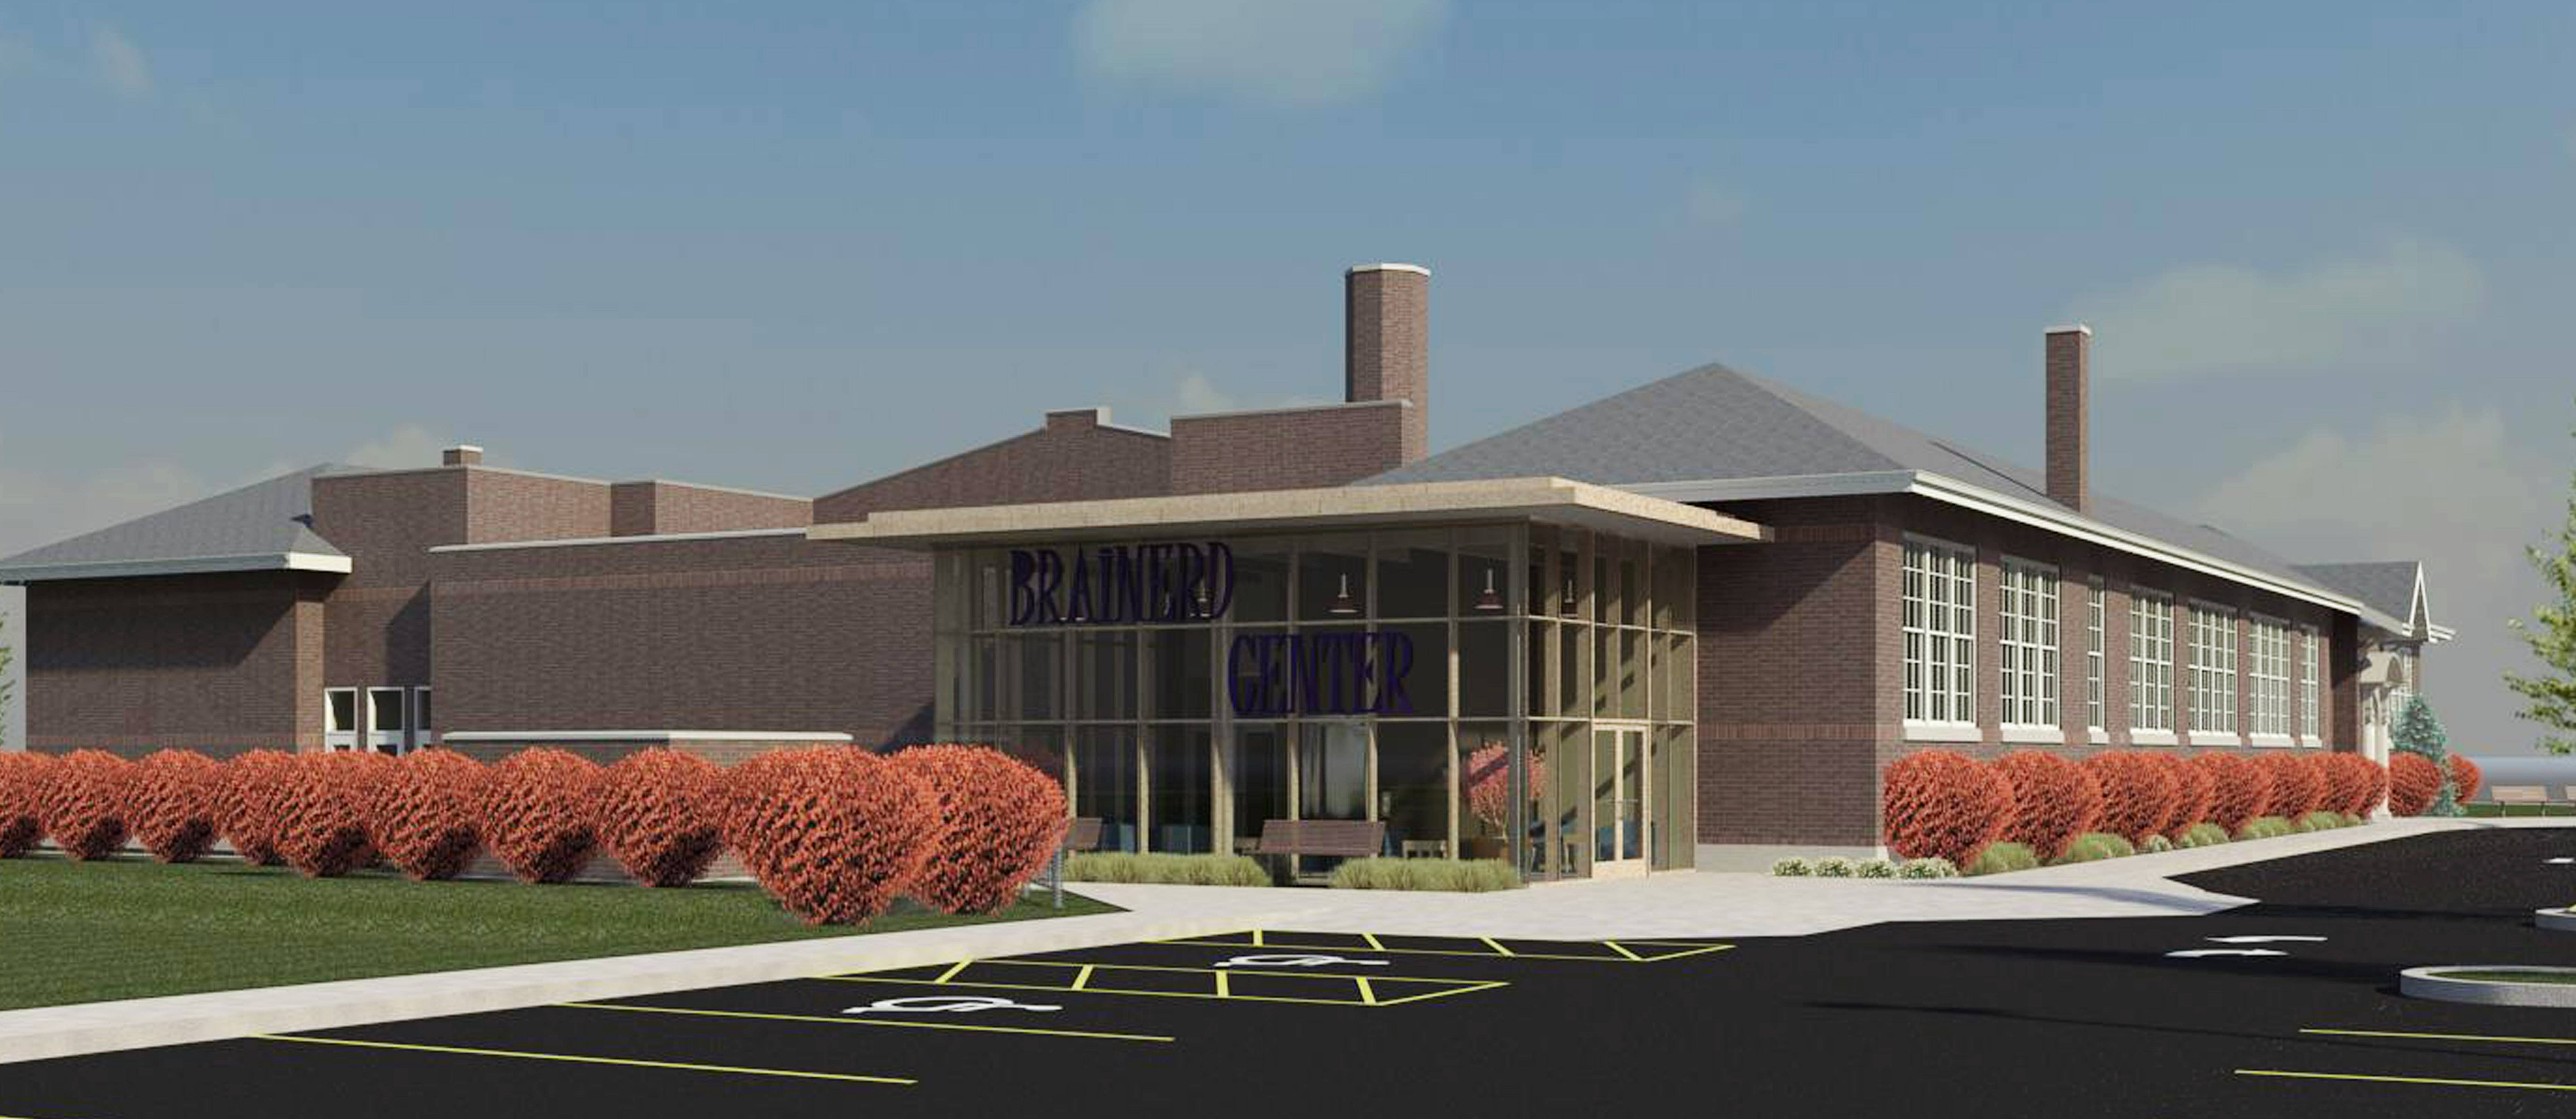 Renderings of the Brainerd Community Center in Libertyville.